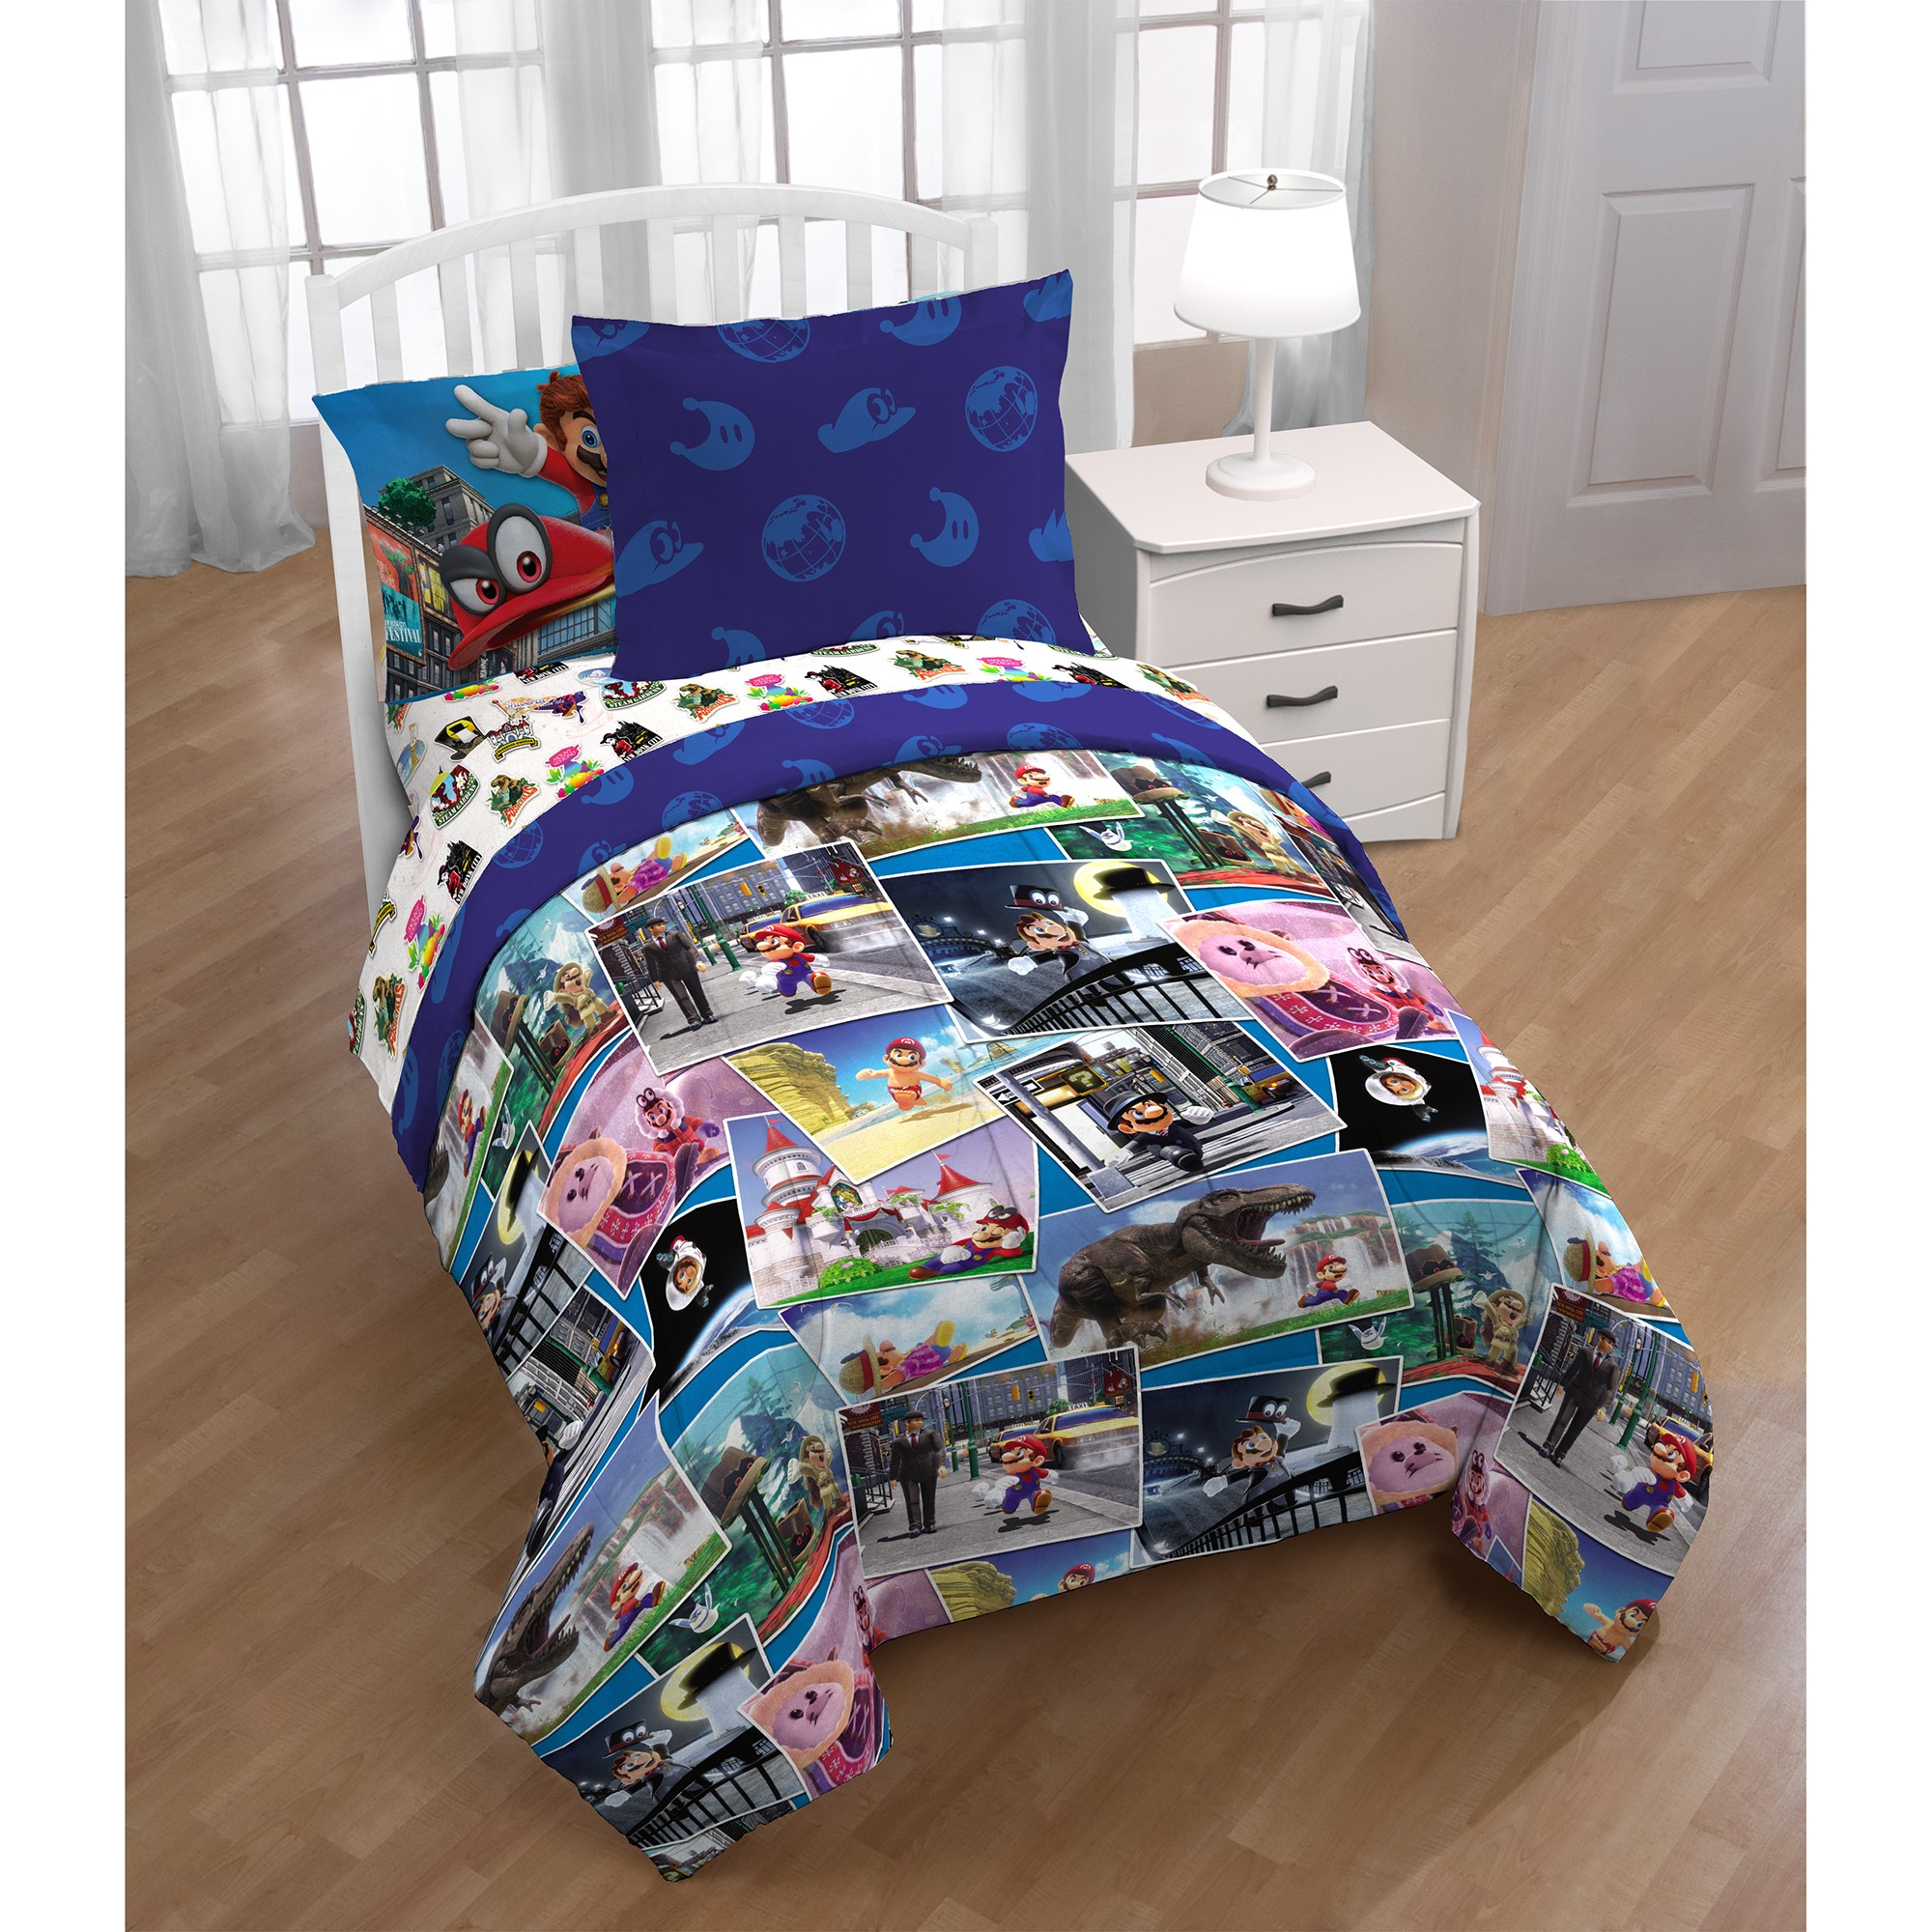 Super Mario 5Pc Bedding Set, Twin, Bed in a Bag with BONUS TOTE!, Around the World